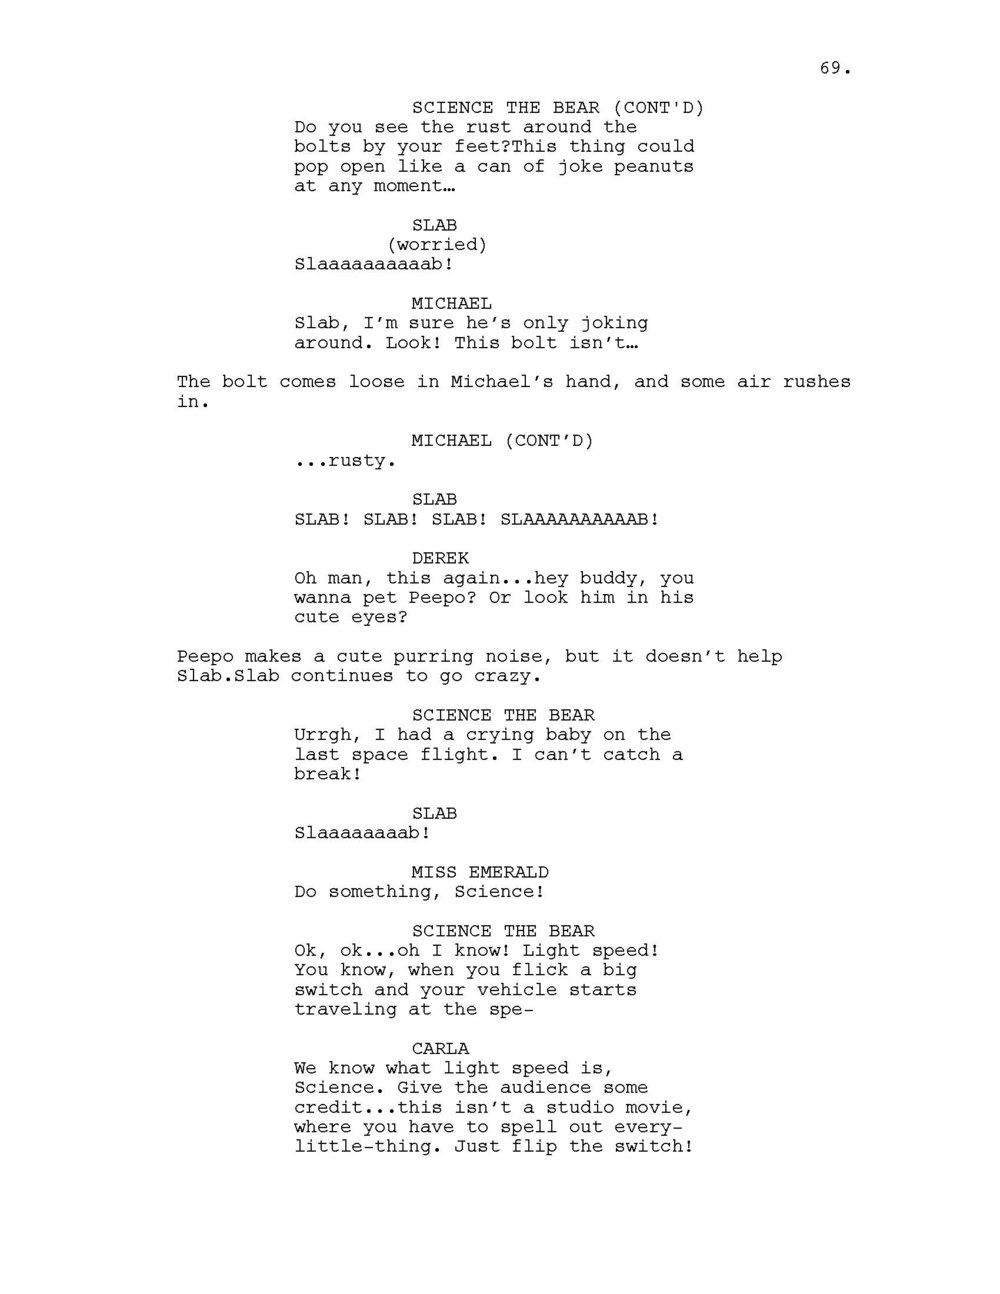 INVISIBLE WORLD SCRIPT_Page_070.jpg